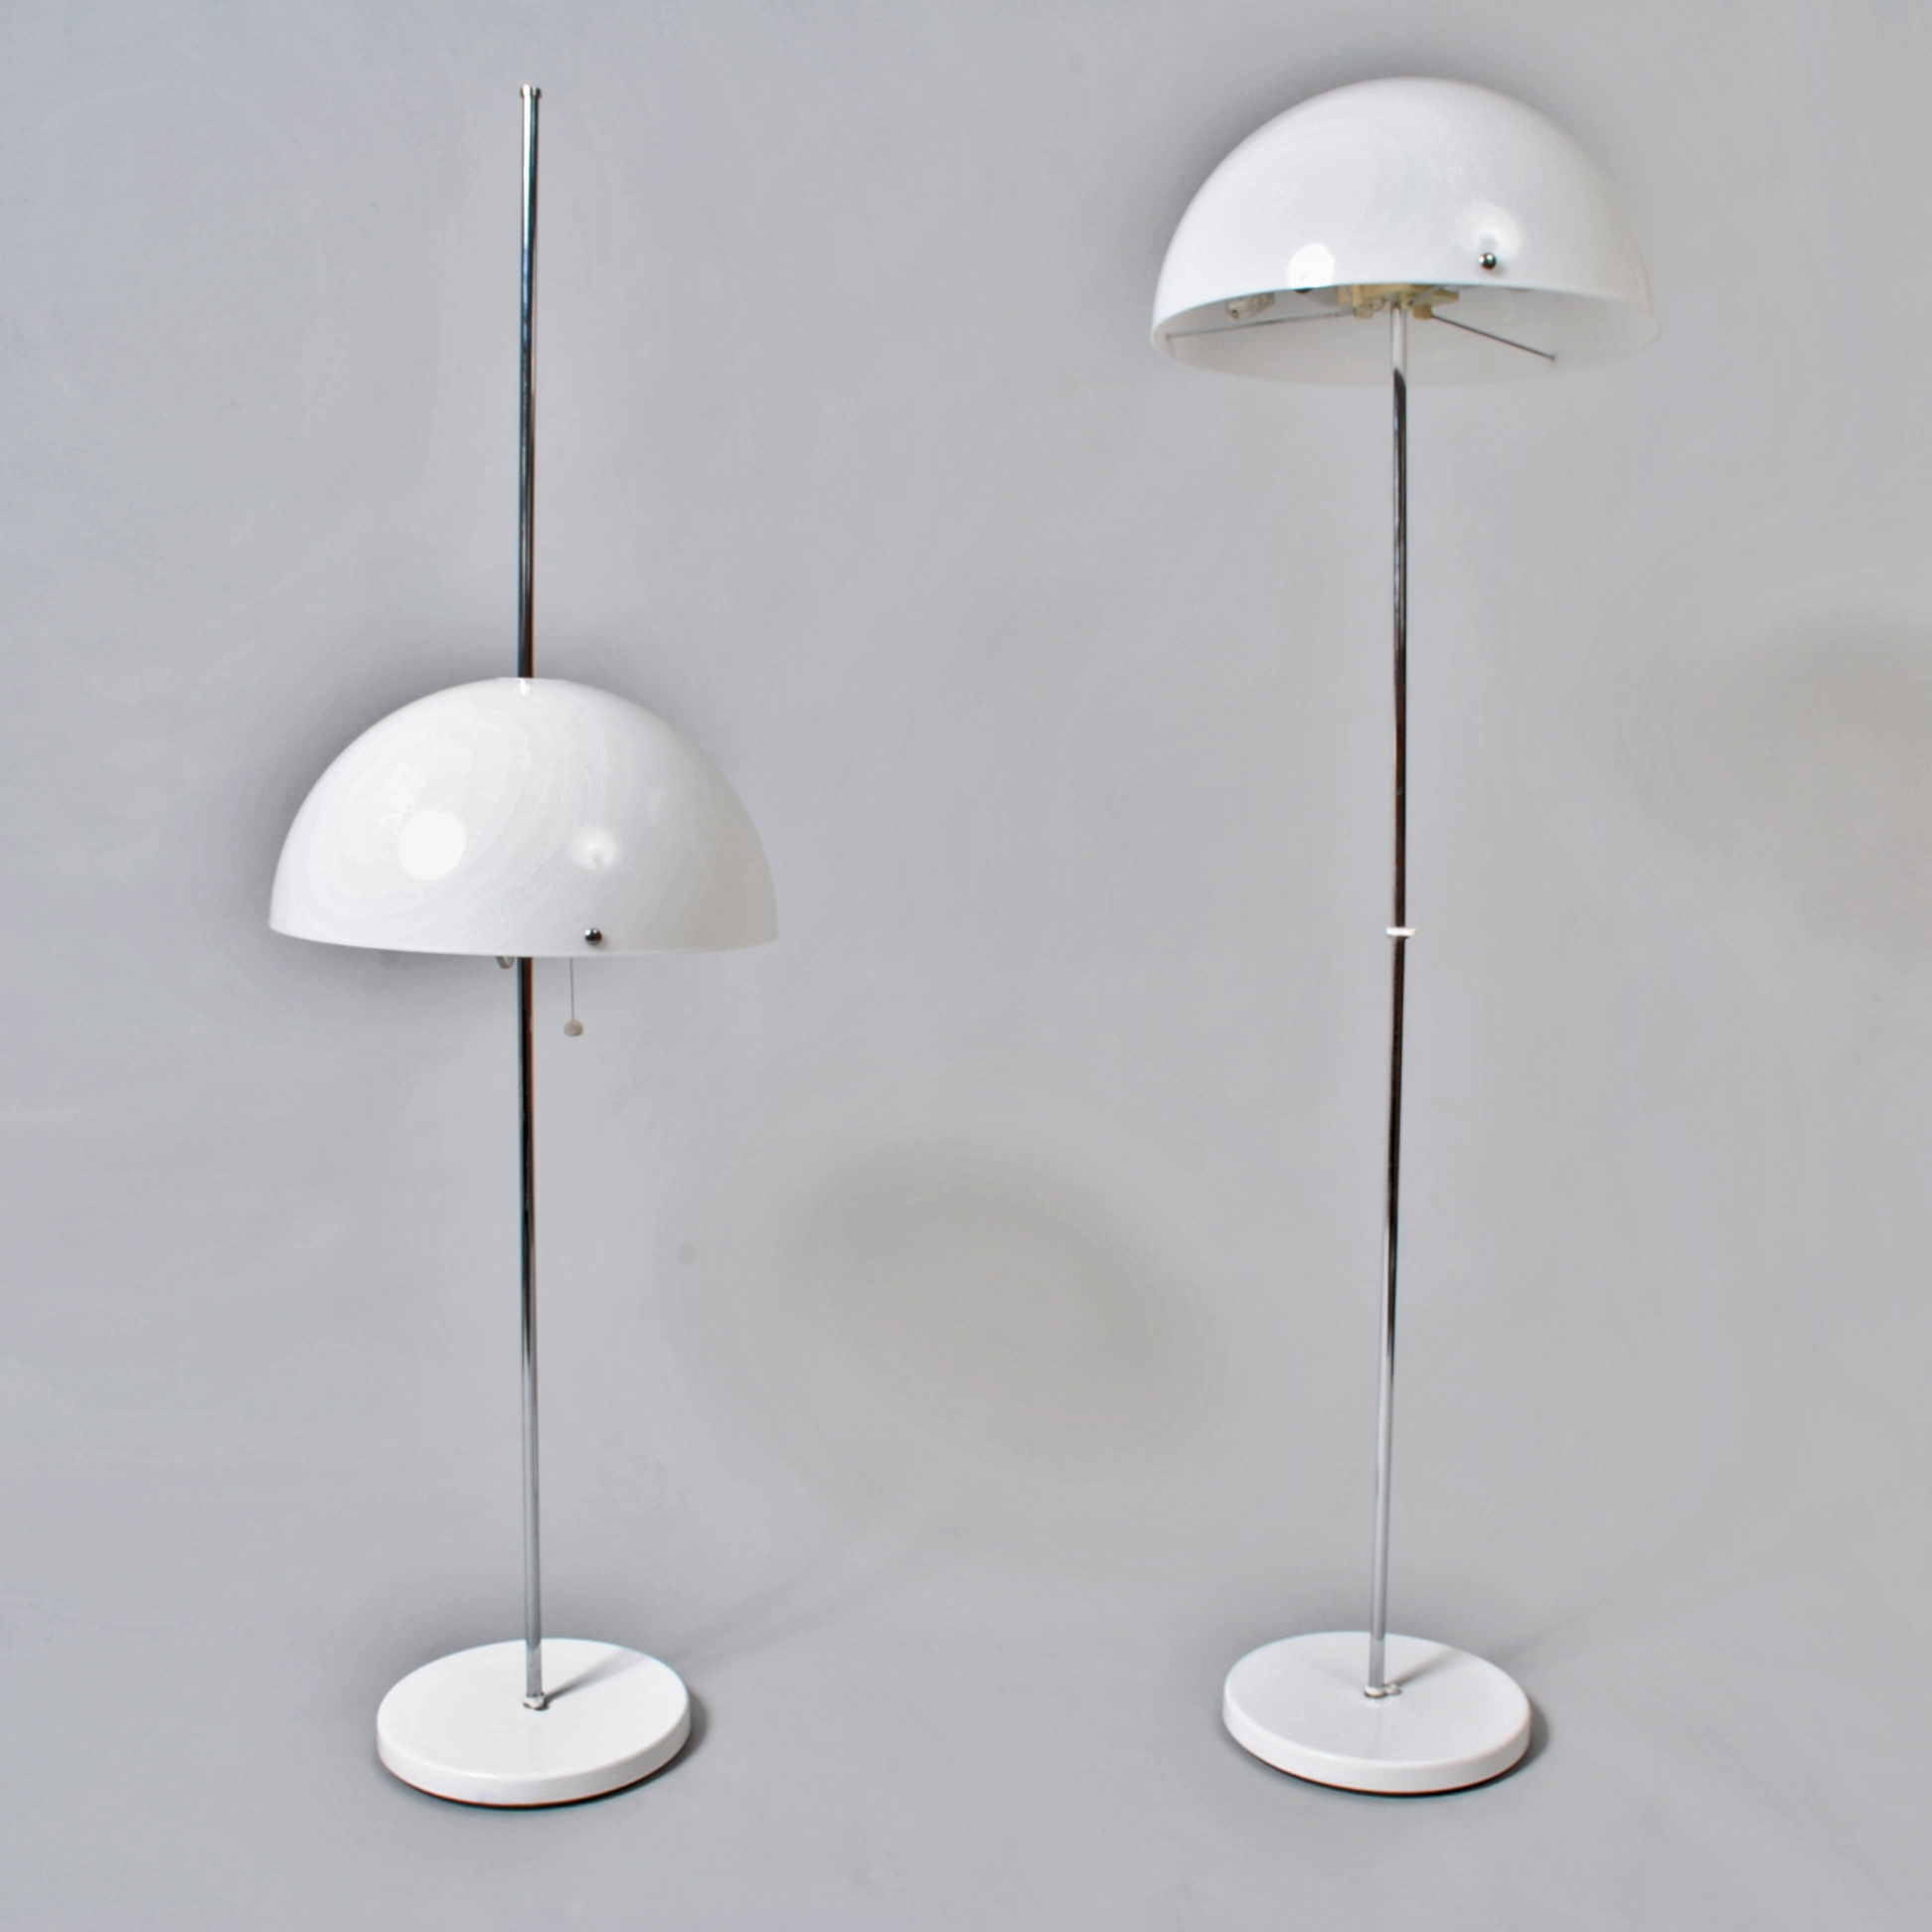 Pair of Mushroom Floor lamps Fagerhult S